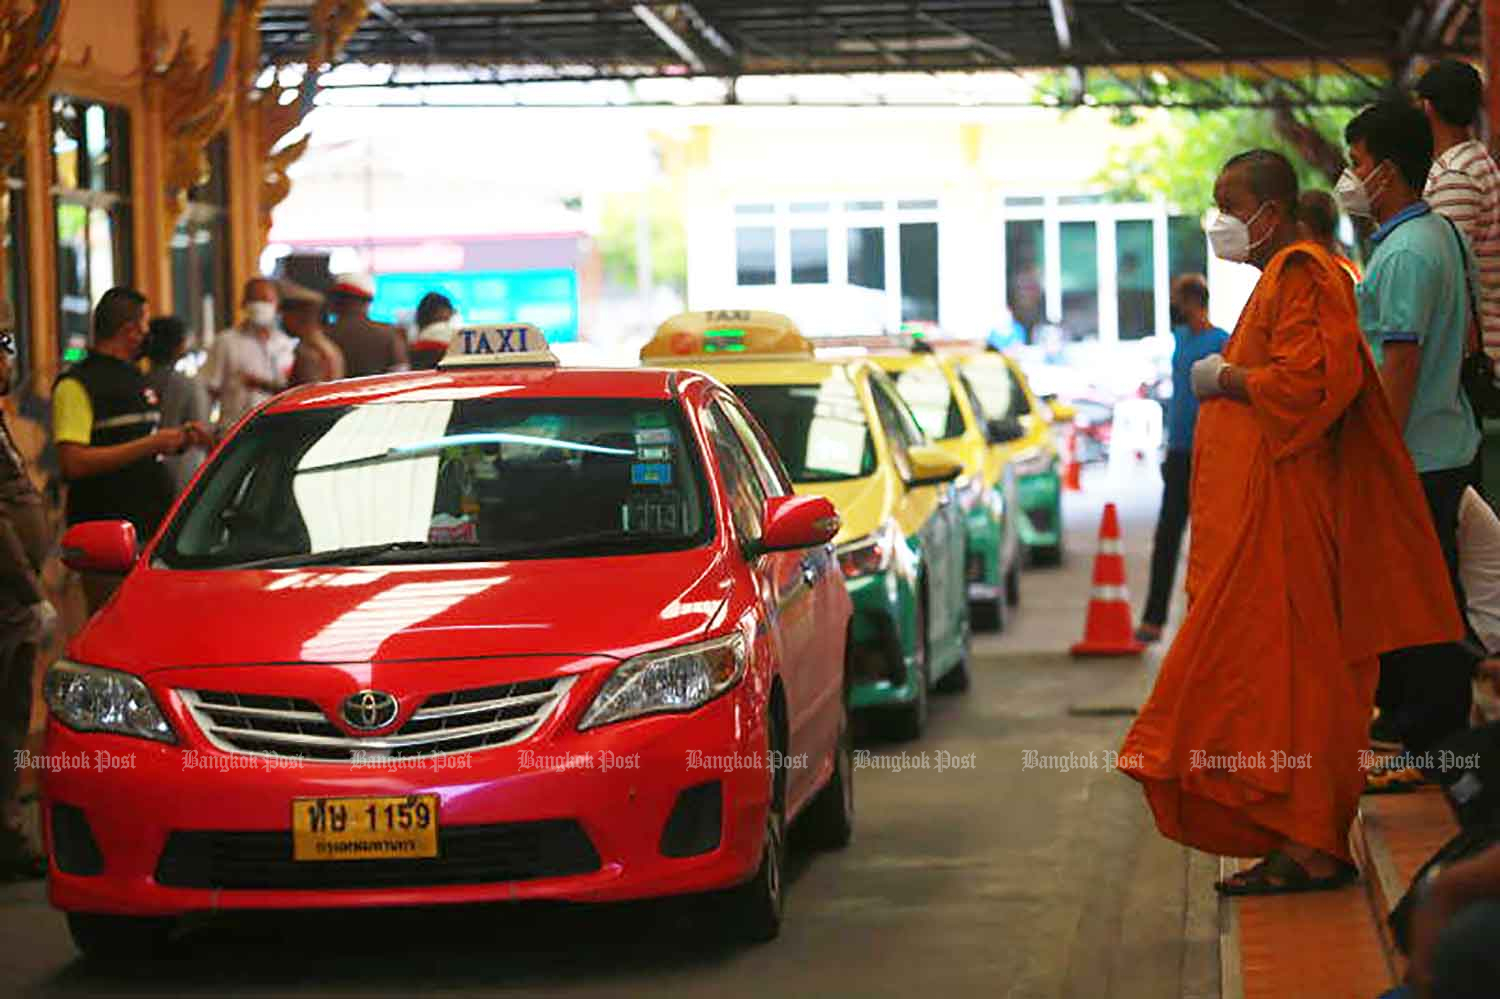 Taxi drivers queue up at Wat Bang Phli Klang in Samut Prakan province to receive donations on Thursday. The temple donated 500 baht in cash and 5kg of rice to each driver. (Photo: Somchai Poomlard)